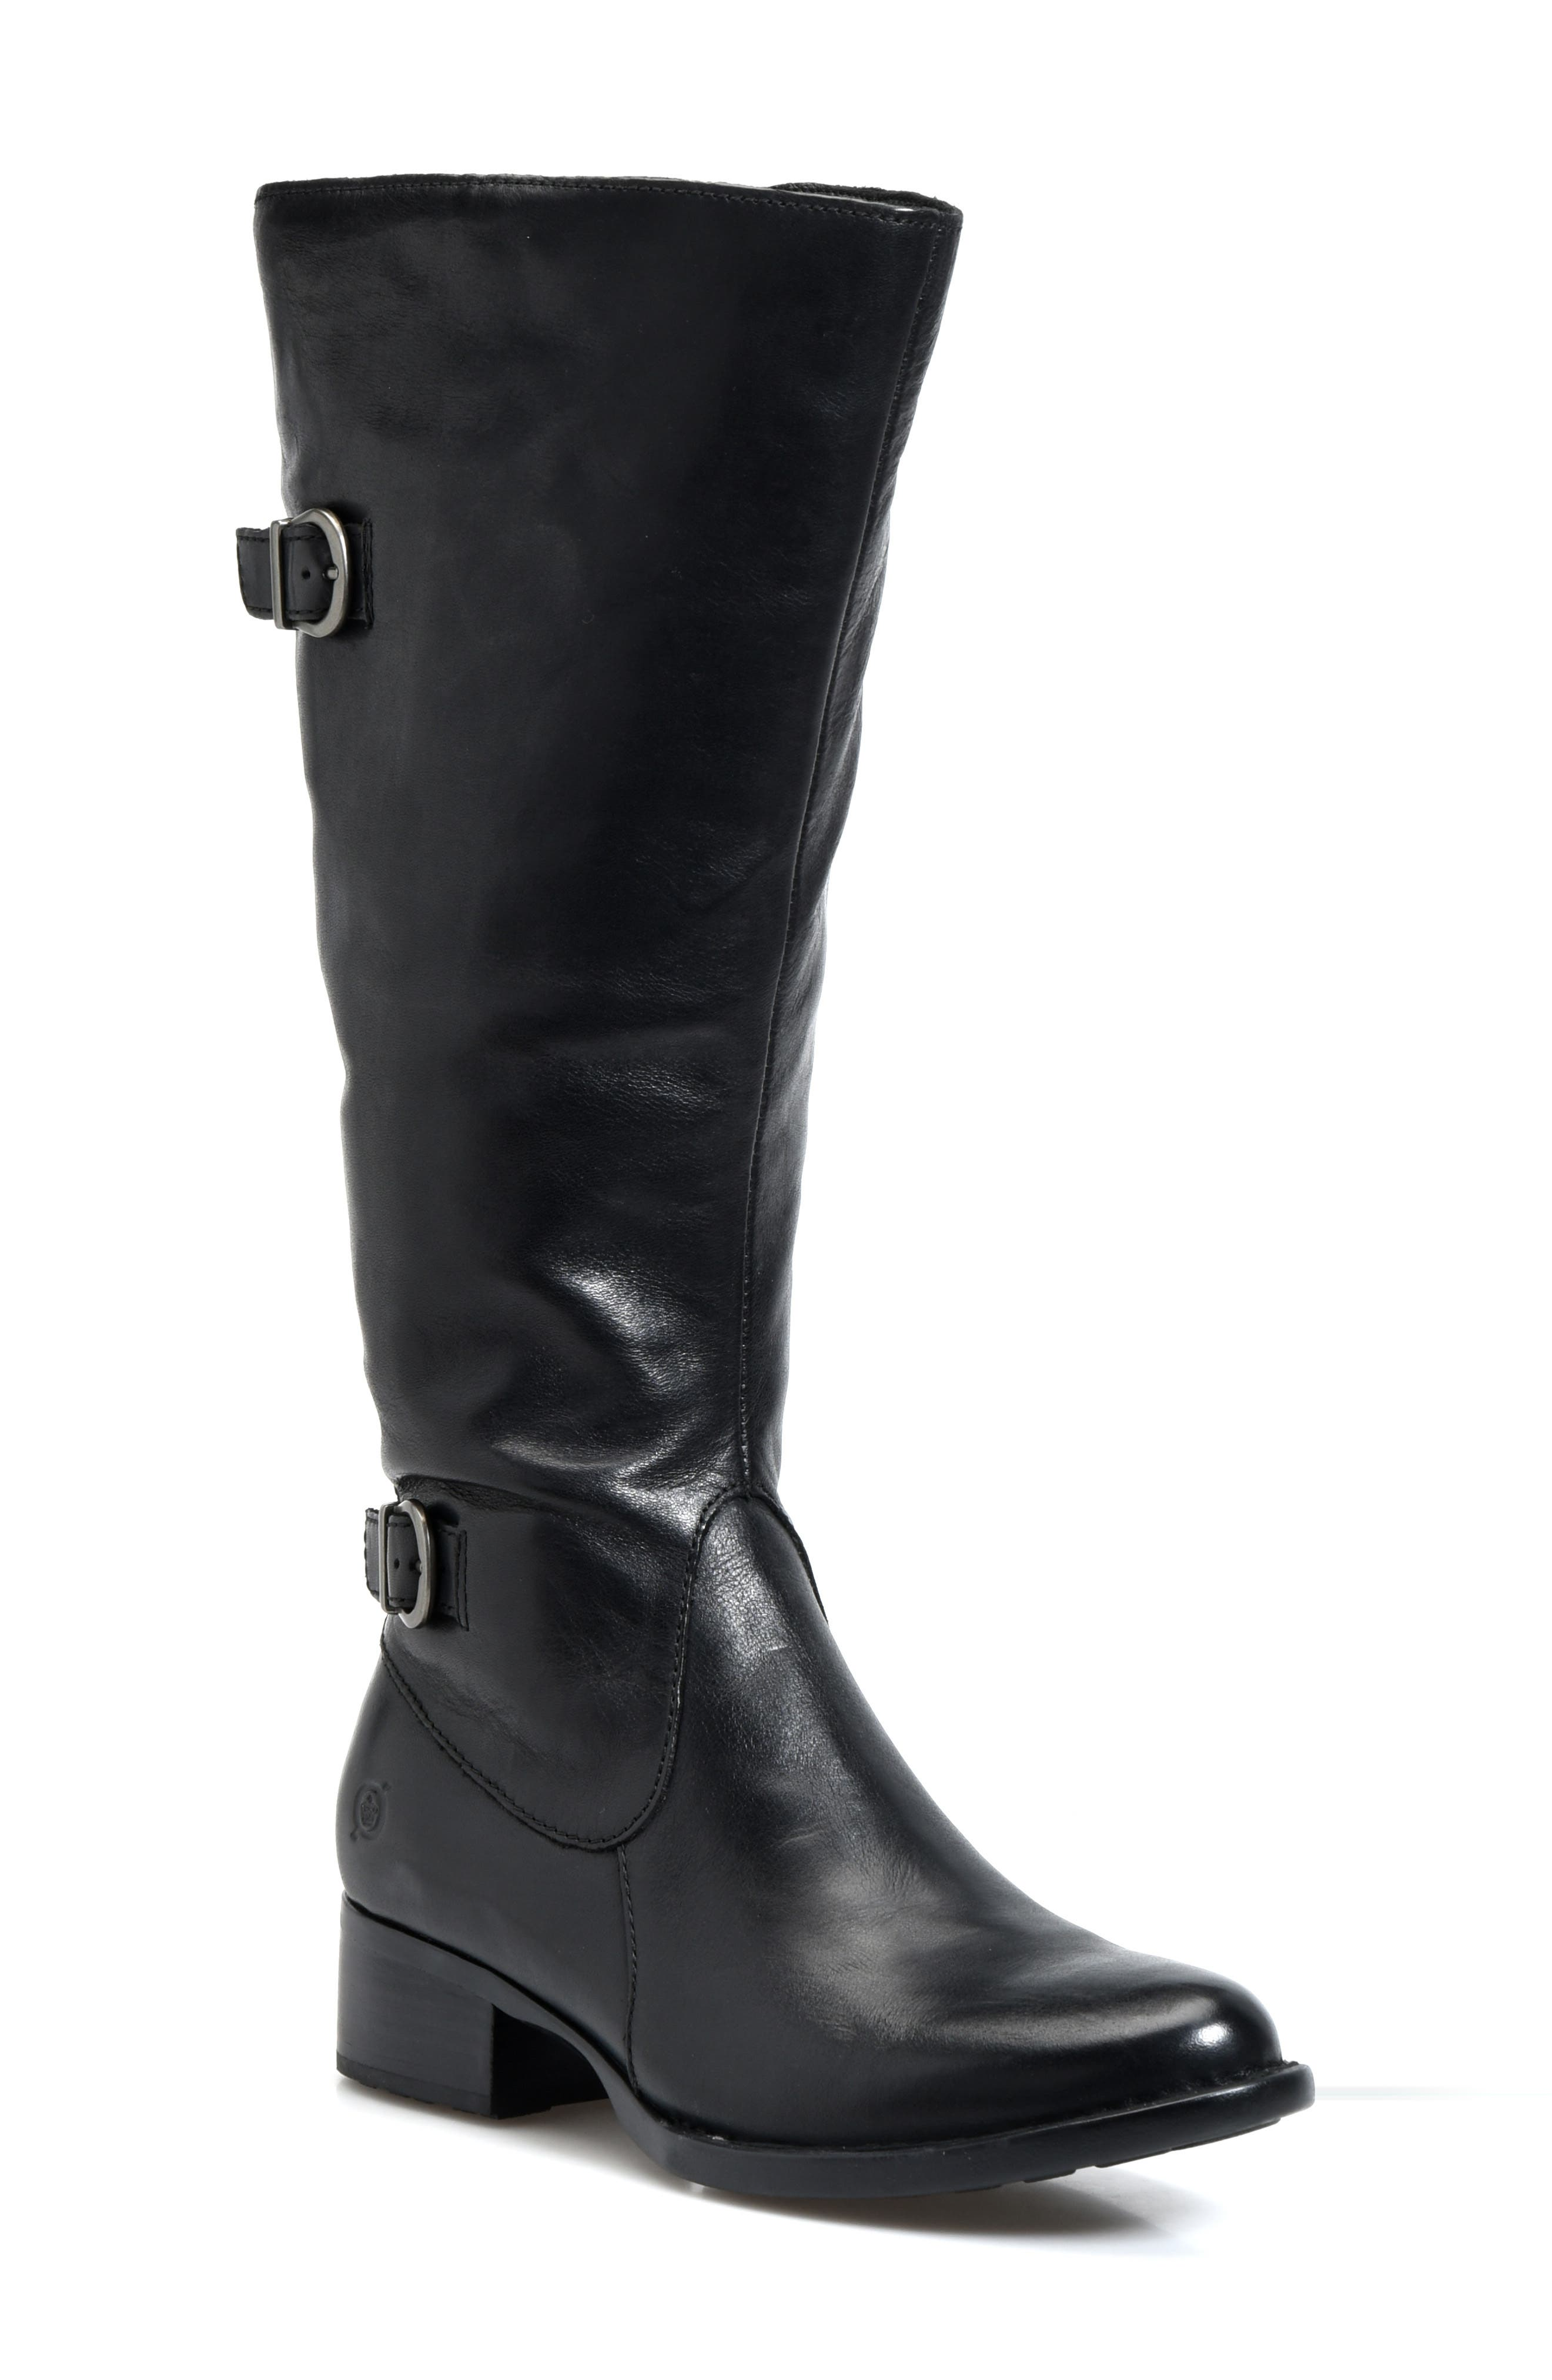 BØRN, Gibb Knee High Riding Boot, Main thumbnail 1, color, BLACK LEATHER